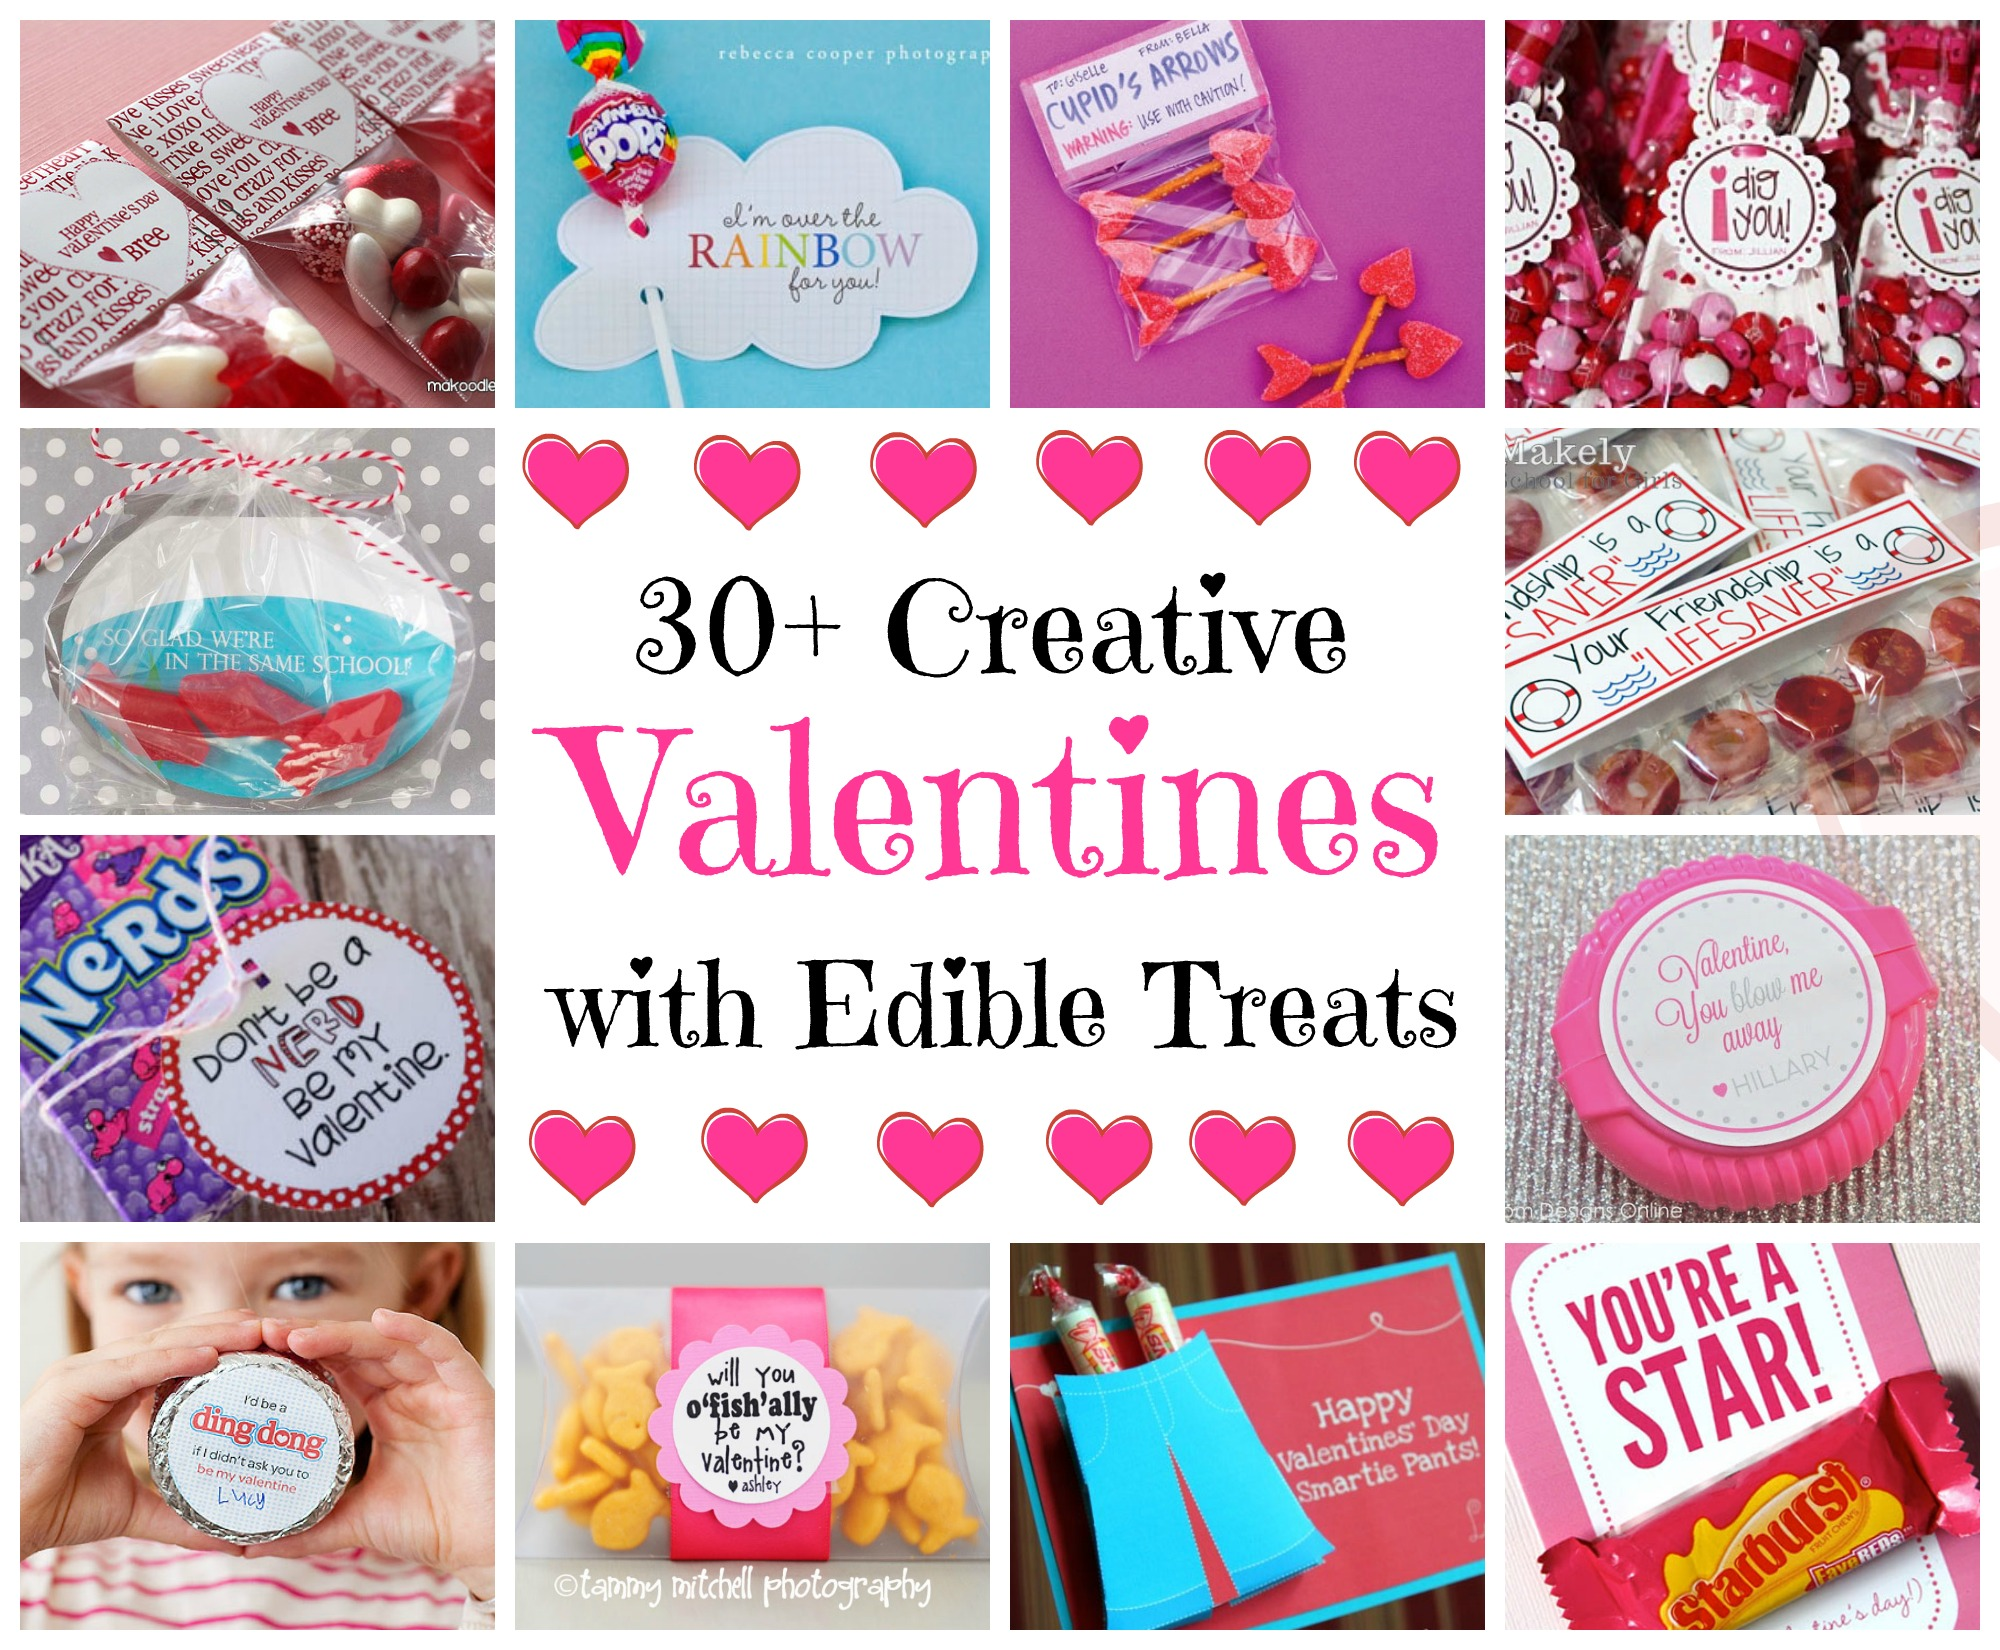 Valentines With Edible Treats